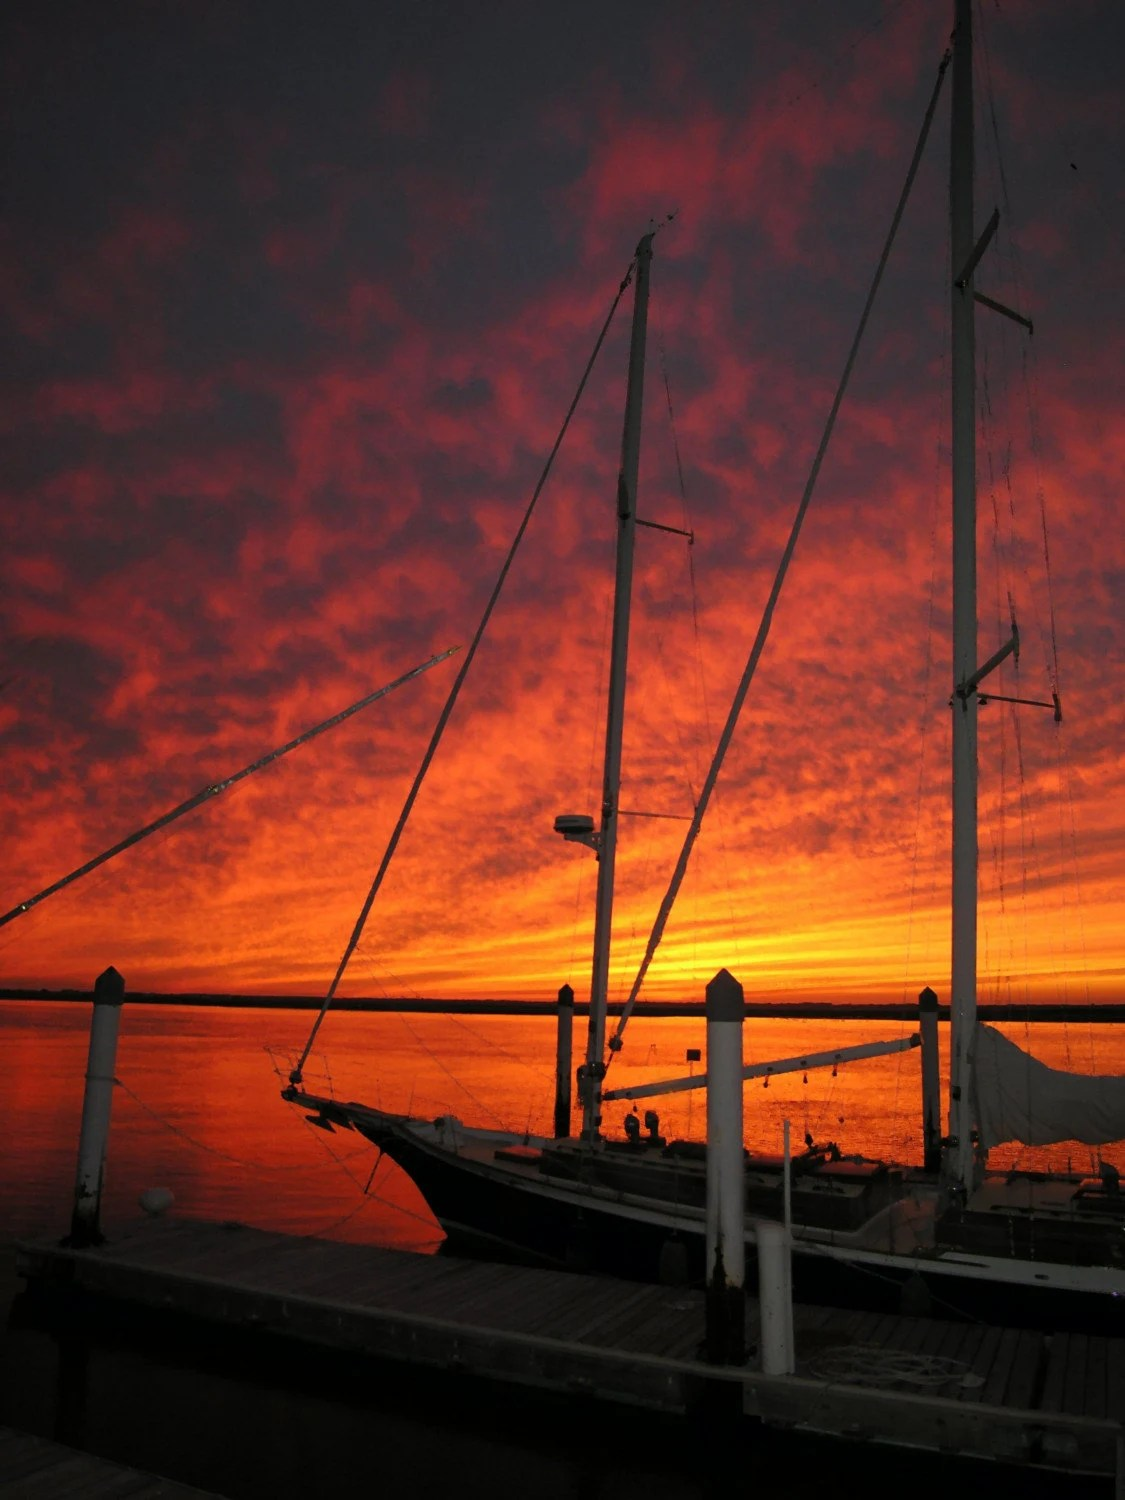 Sloop Fiery Sunset---matted image